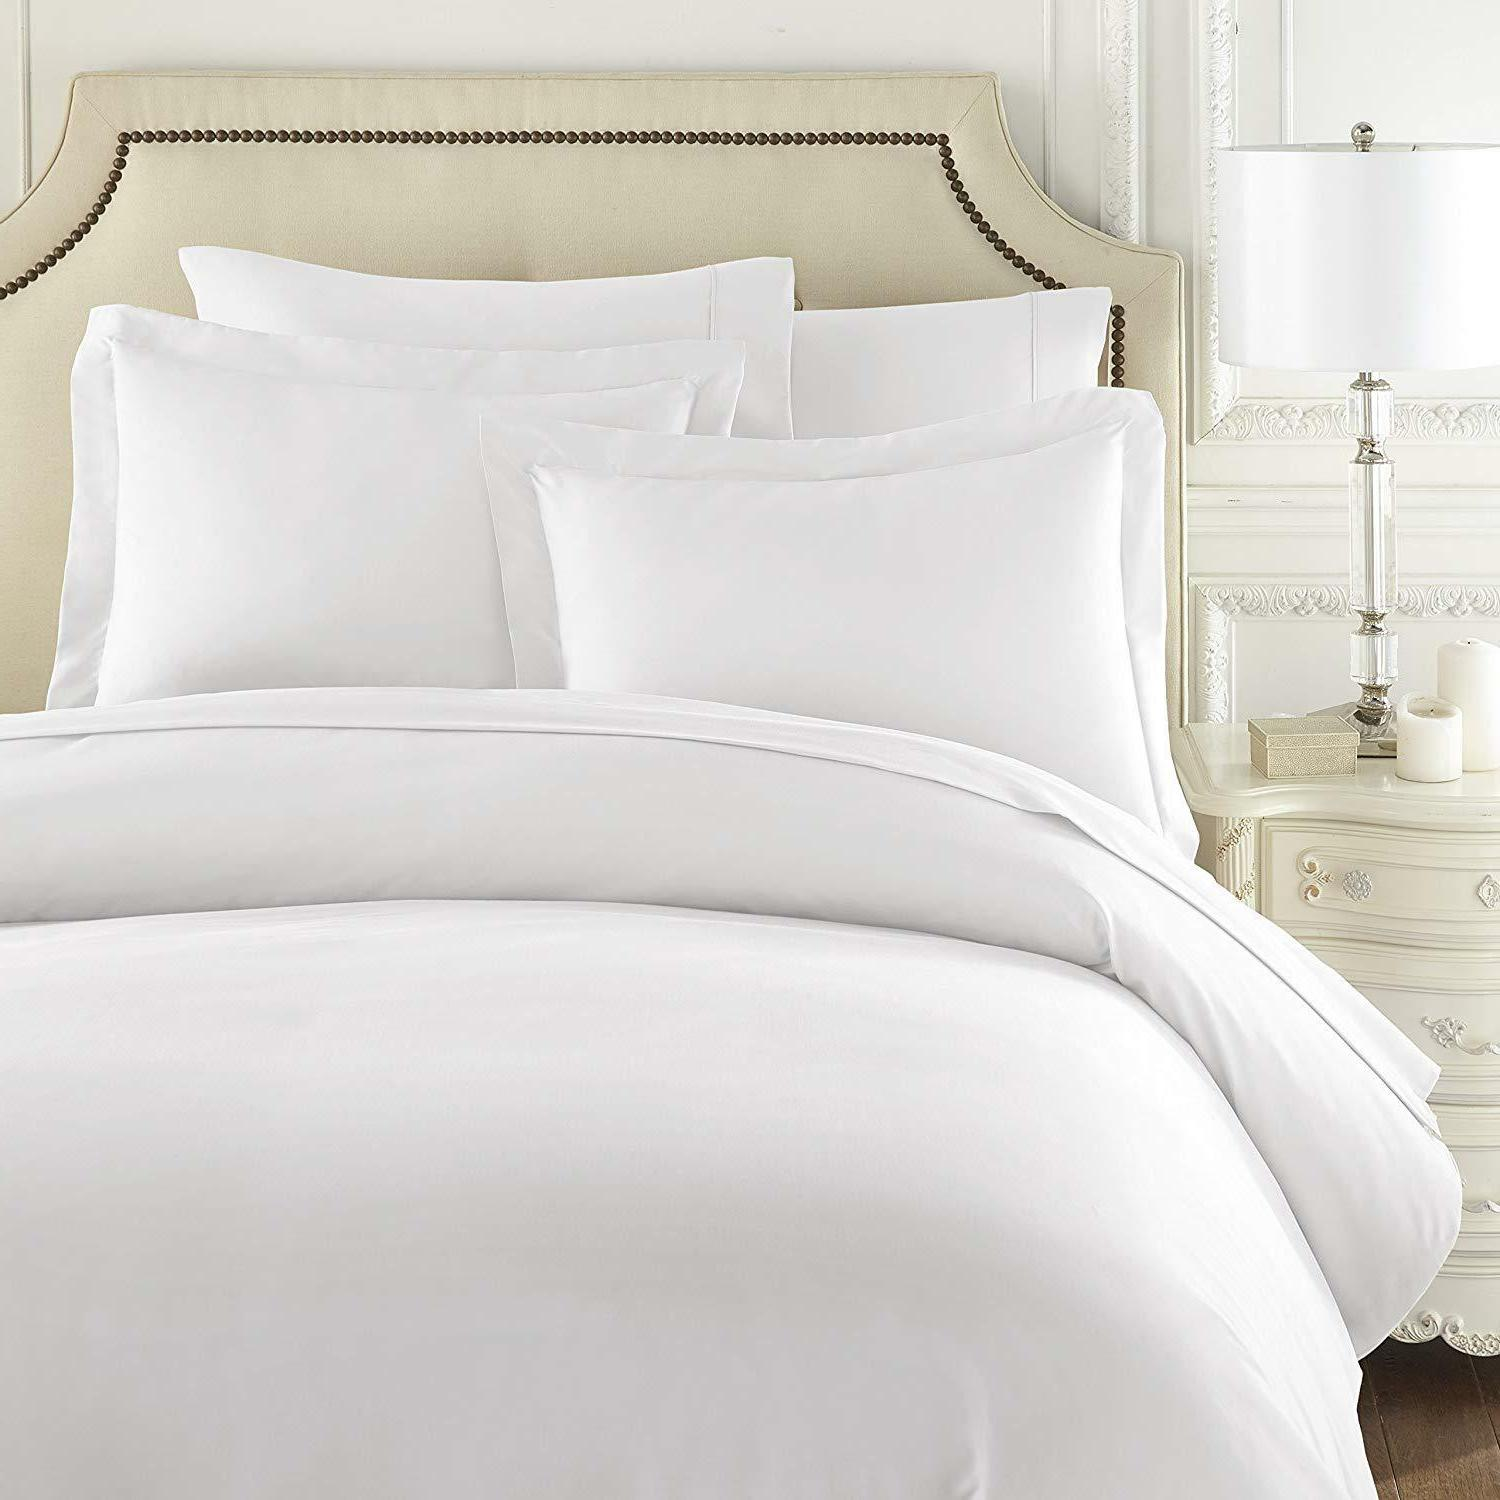 hotel duvet cover collection queen king sheet